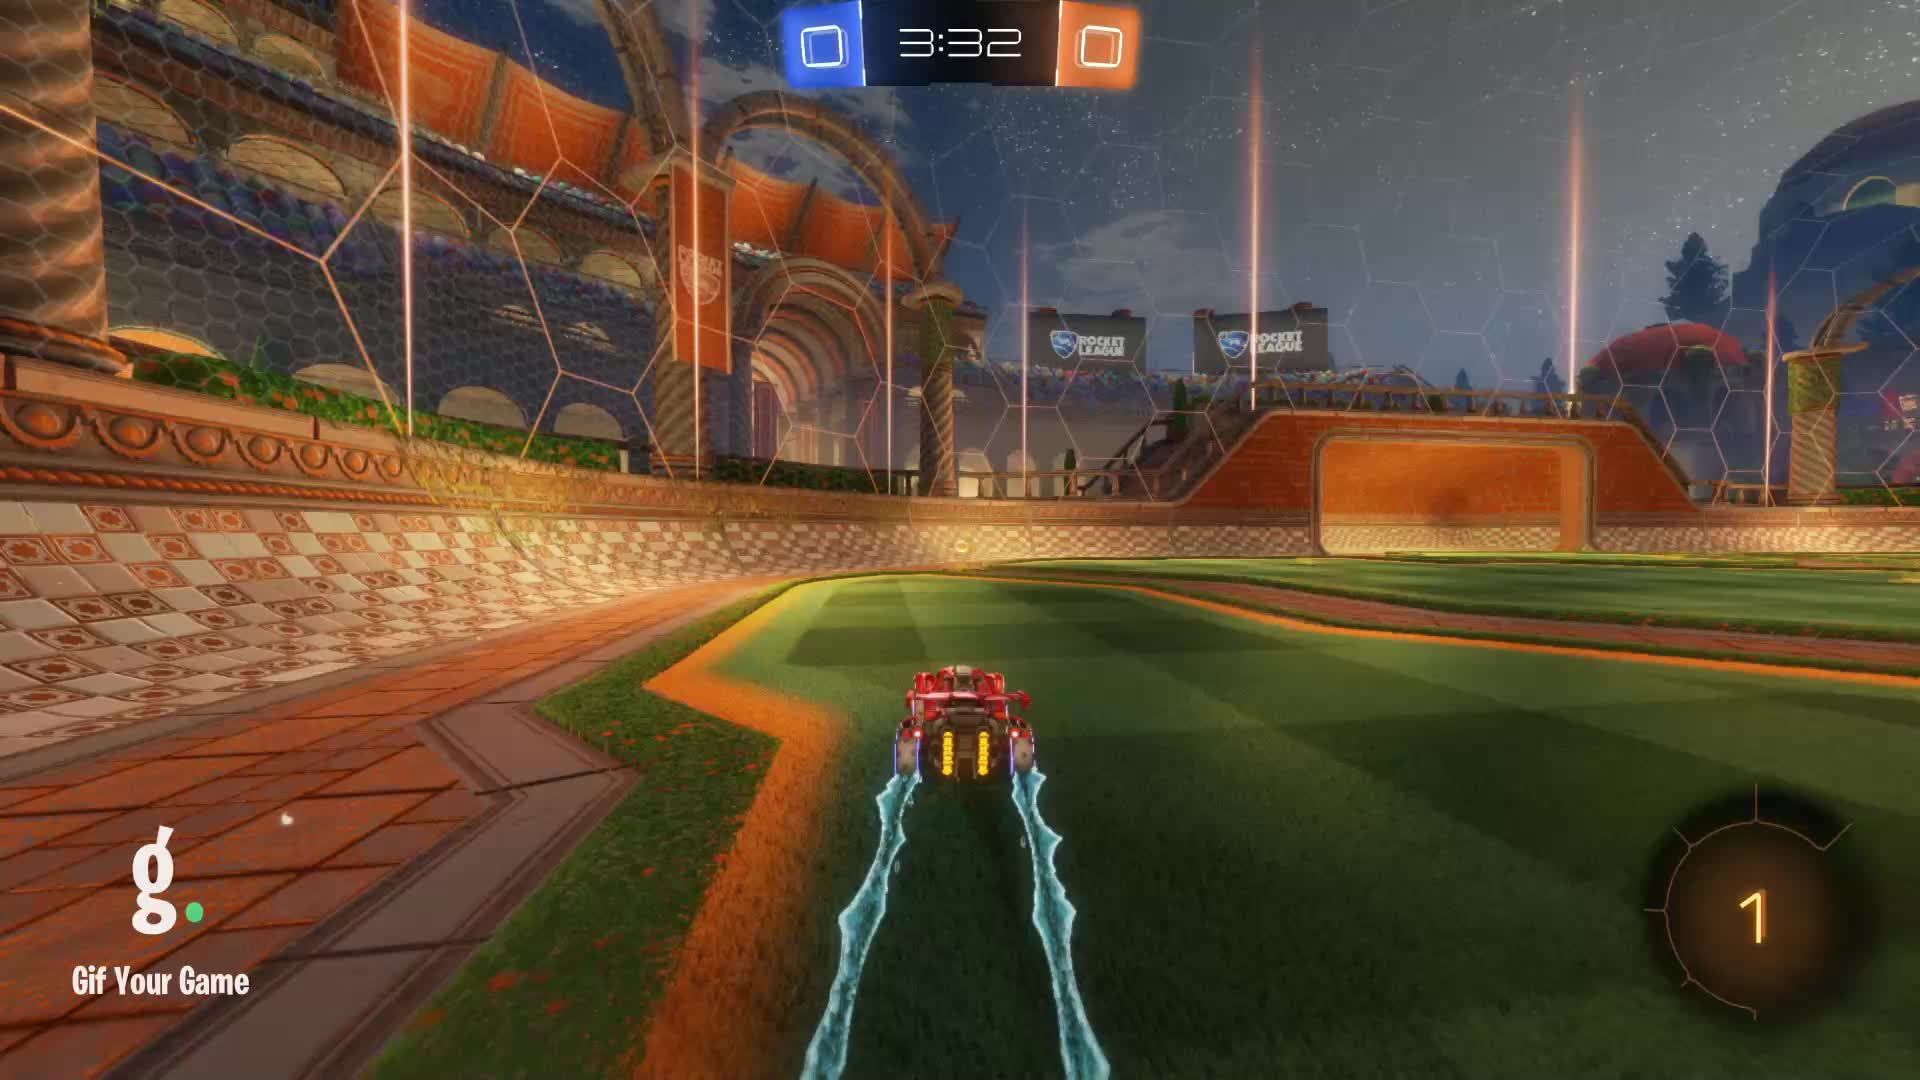 Gif Your Game, GifYourGame, Panthers   BroKroki, Rocket League, RocketLeague, Goal 1: Panthers   BroKroki GIFs